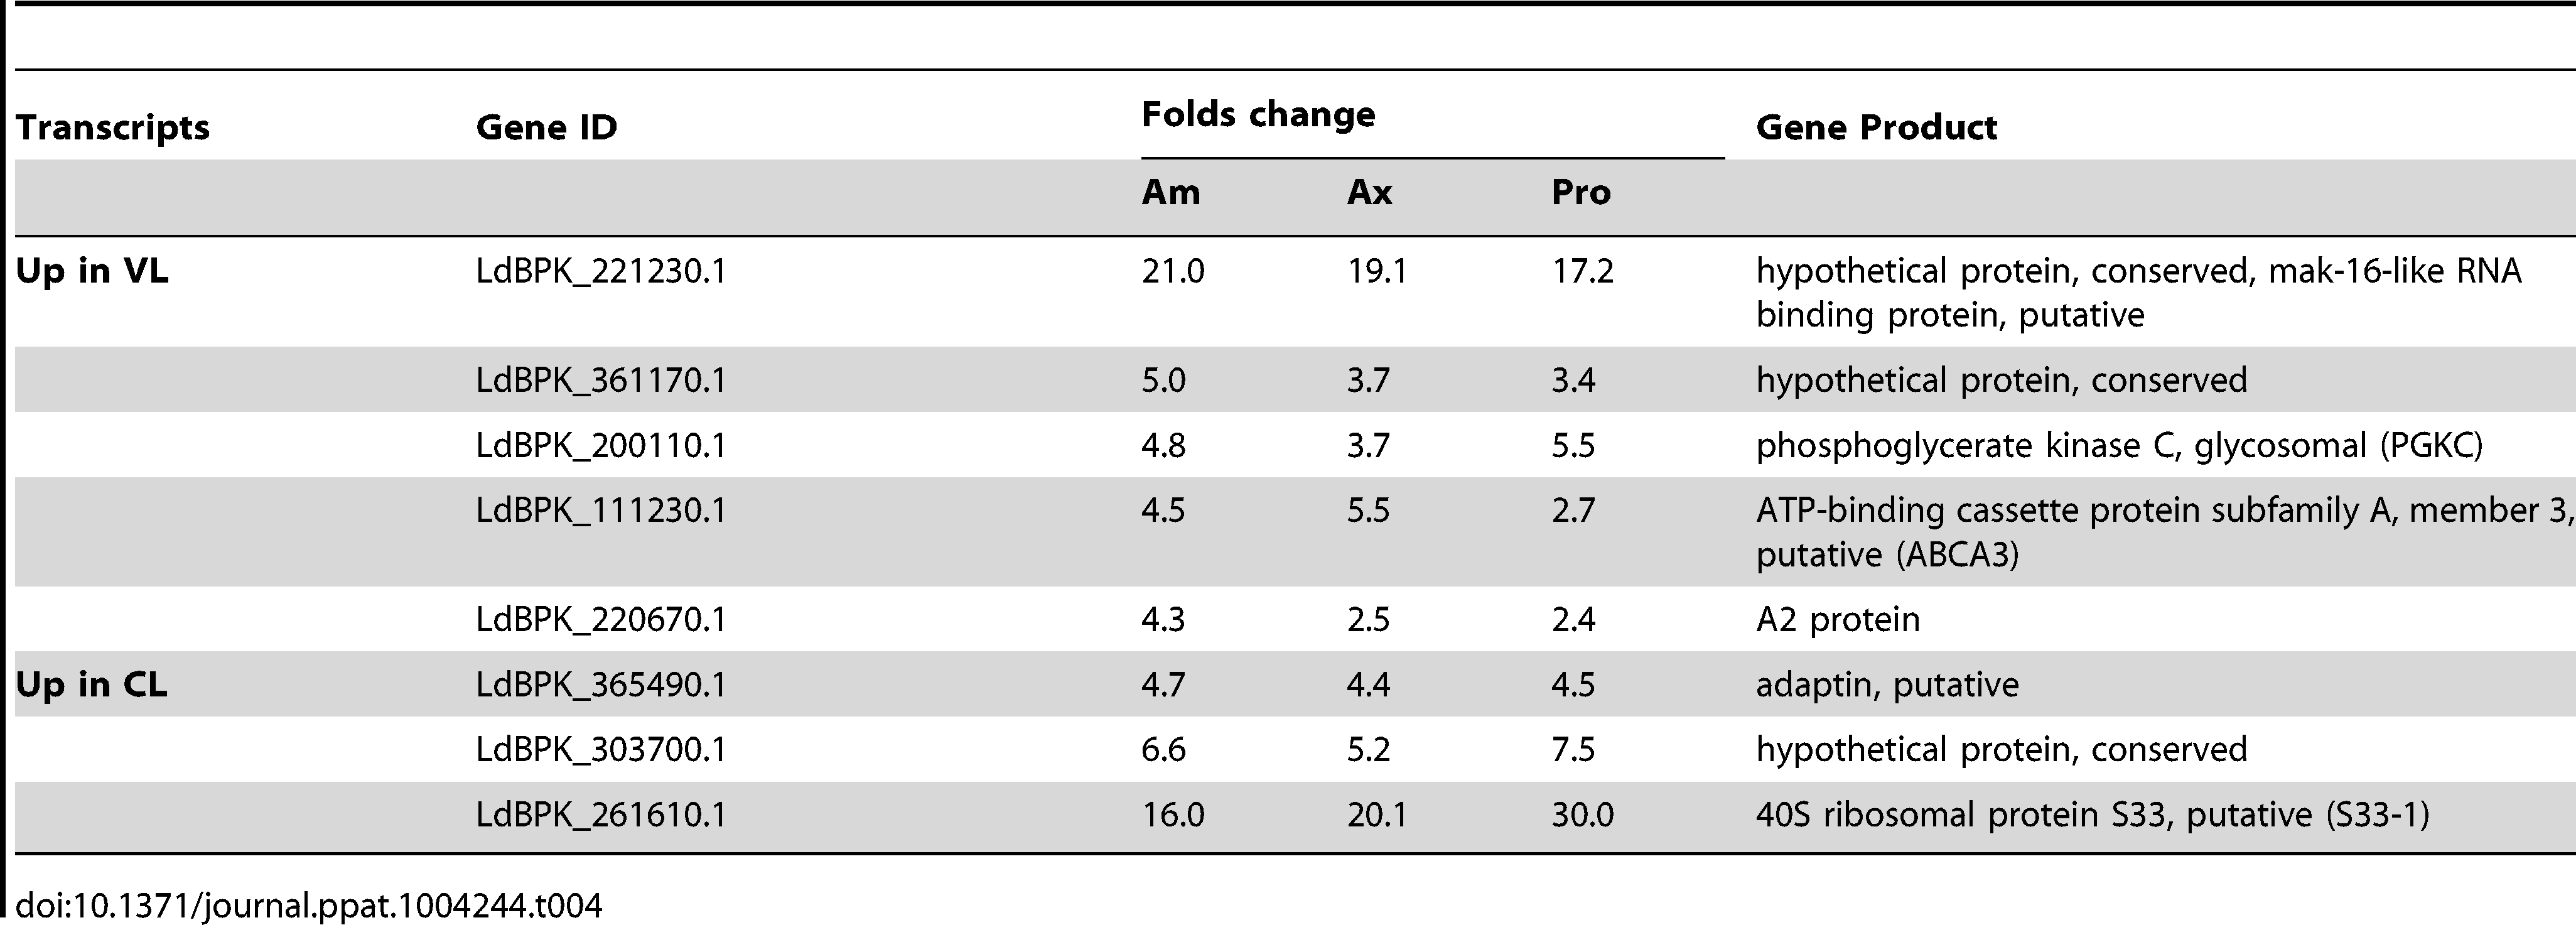 Genes with more than 4 fold change in transcript levels between the CL-SL and VL-SL isolates.